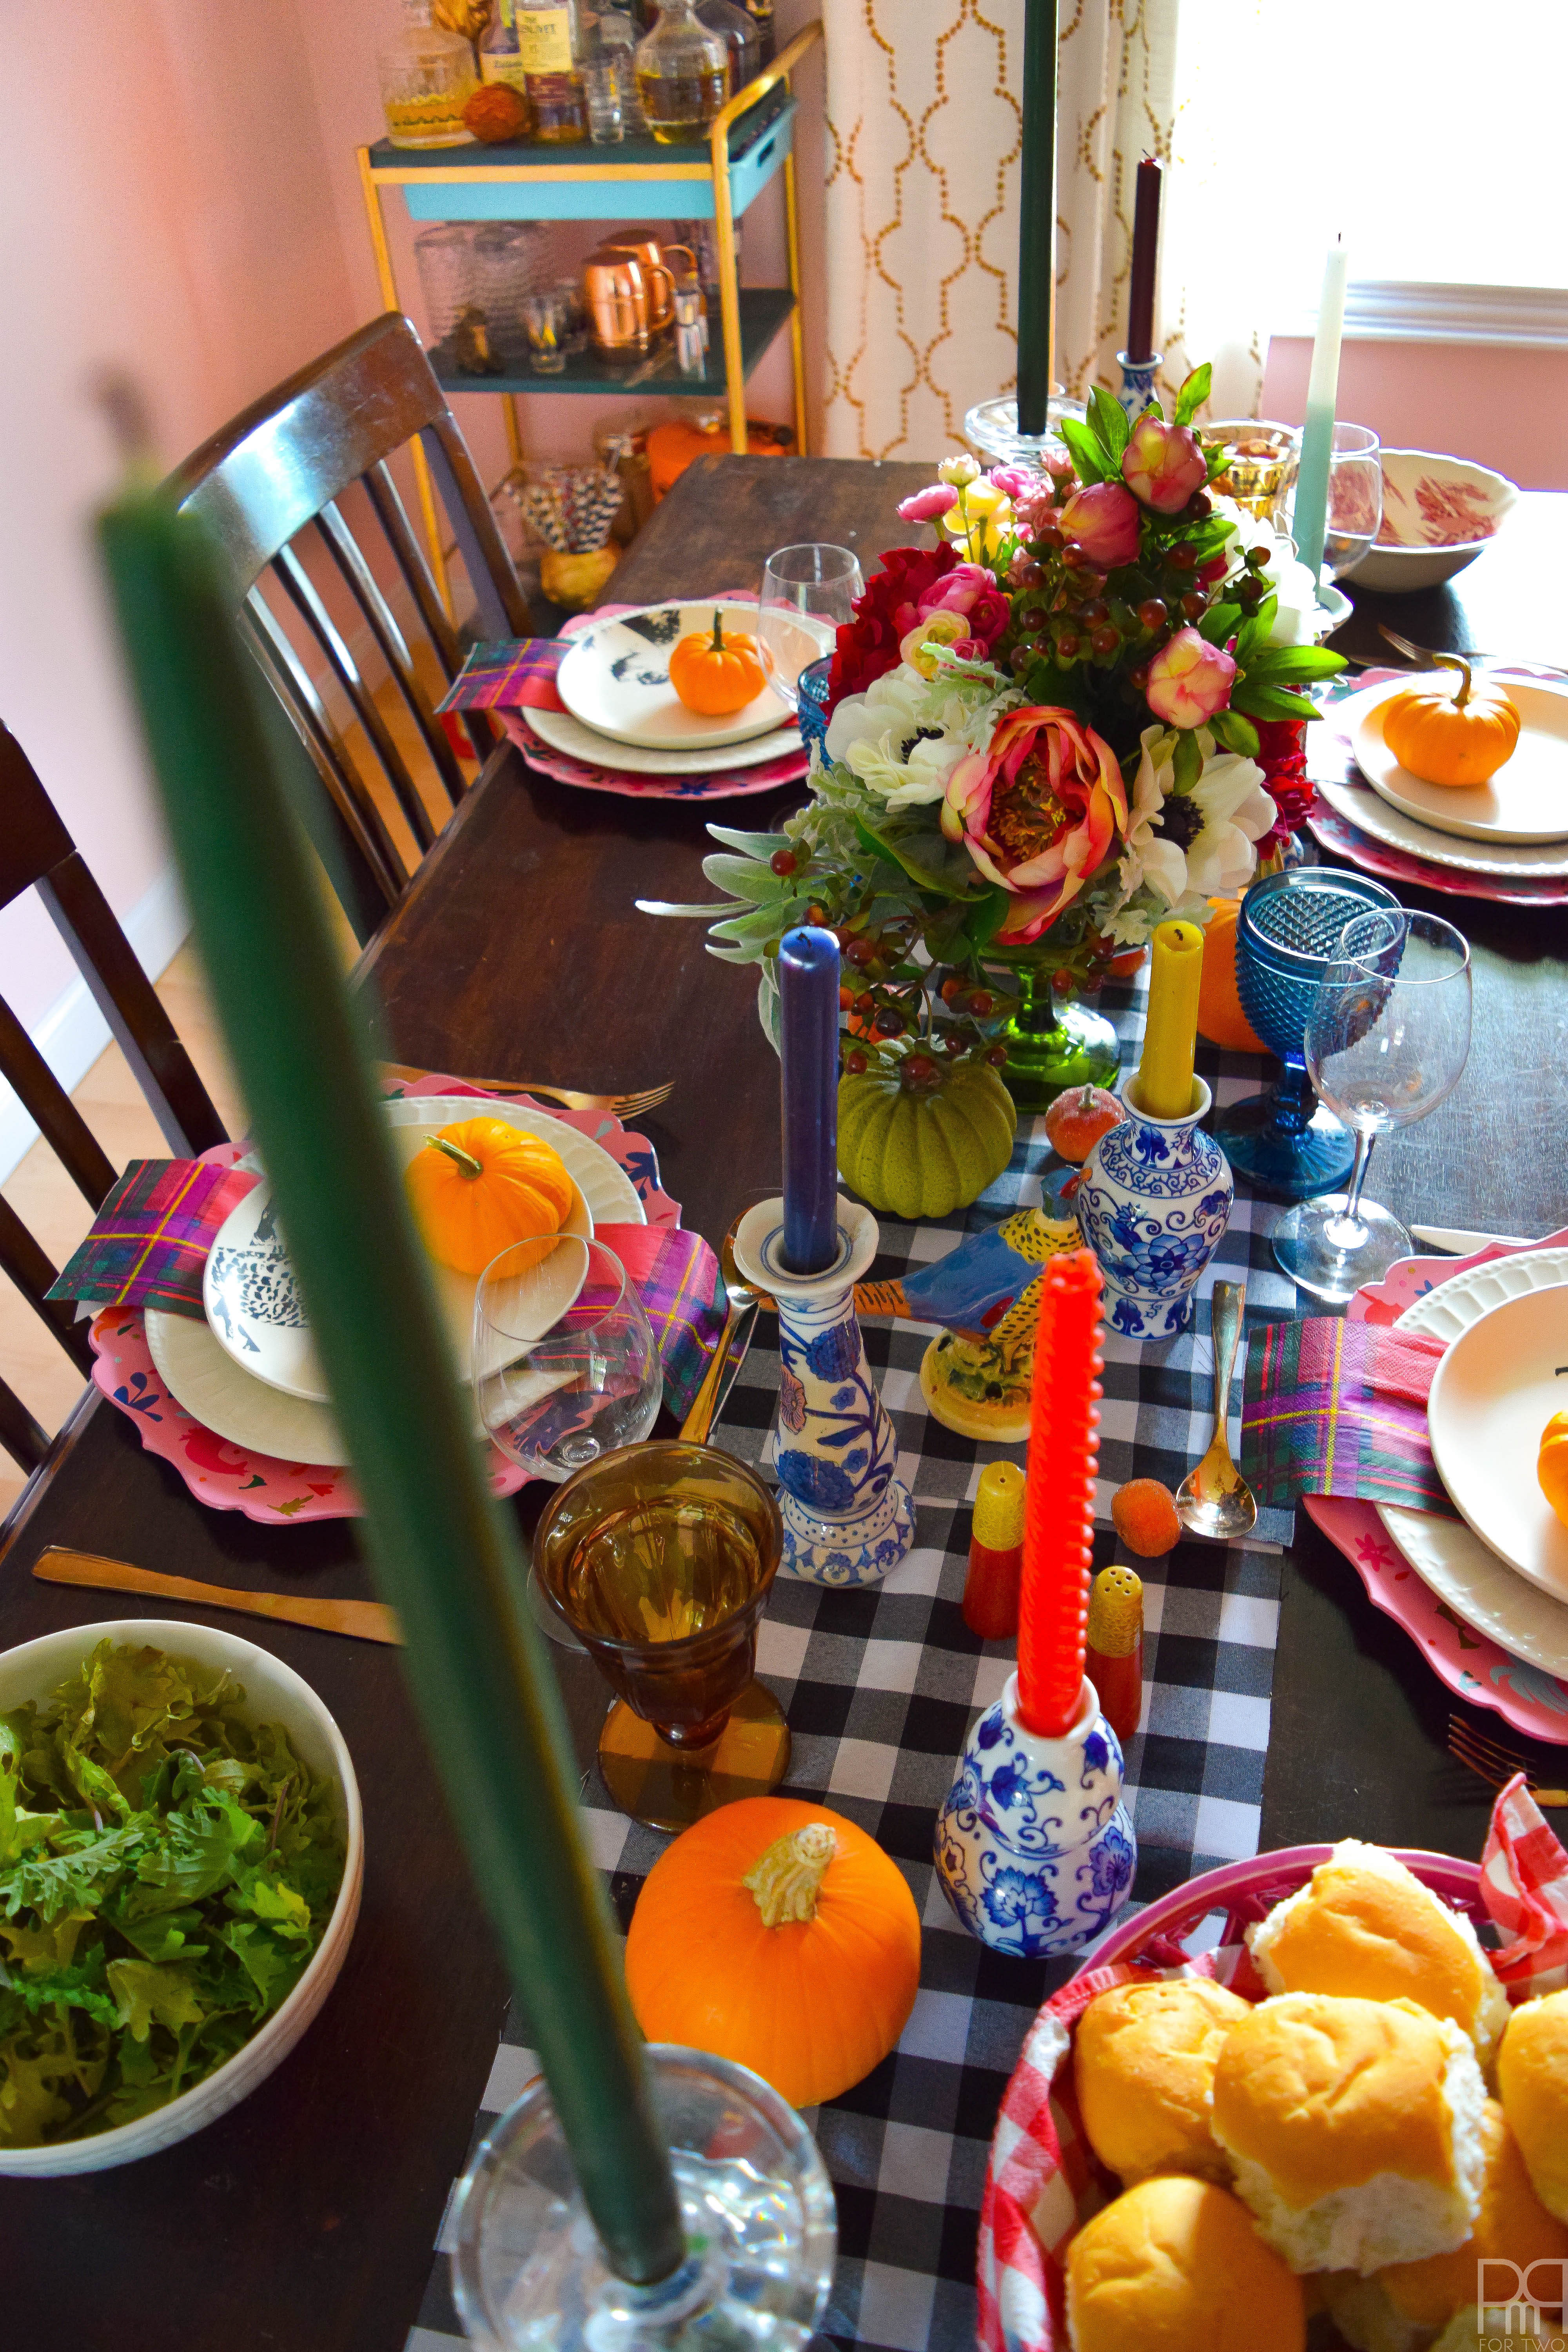 An eclectic and colourful thanksgiving tablecape that puts hearth and home, colours of all kind and bold patterns on display in a season of giving.